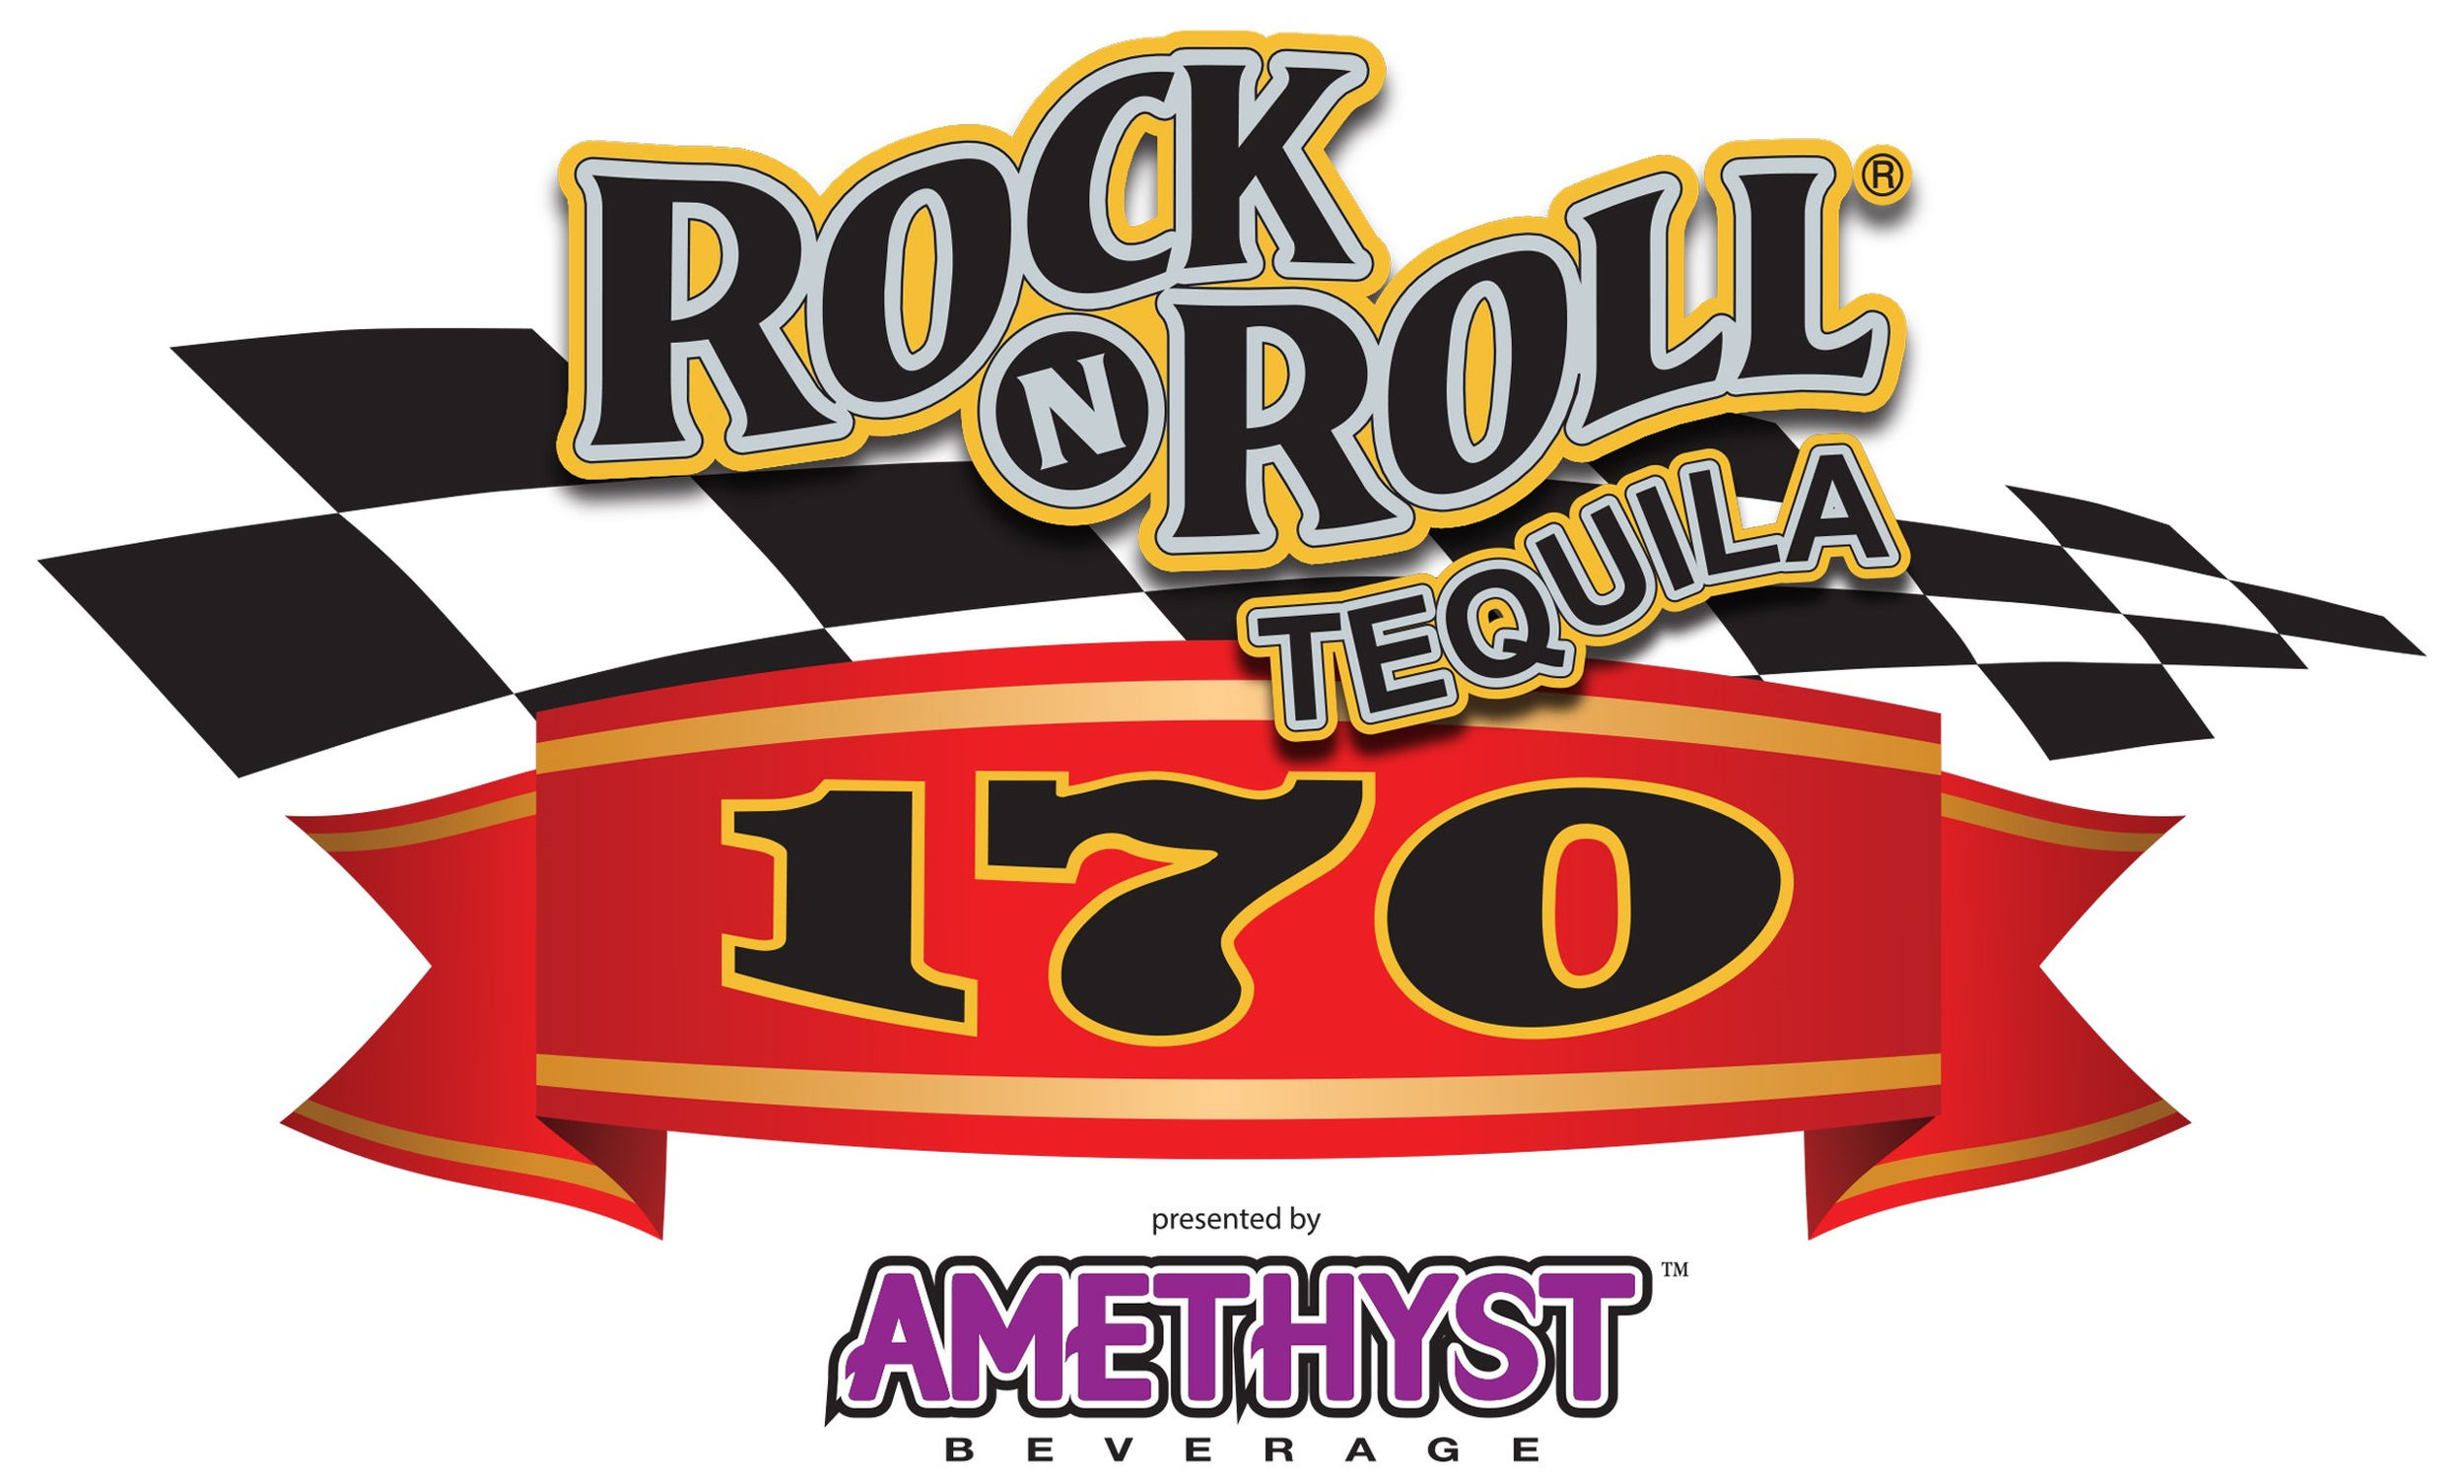 Rock and roll and race cars clipart graphic library Rock N Roll Tequila named title sponsor of NASCAR Xfinity ... graphic library